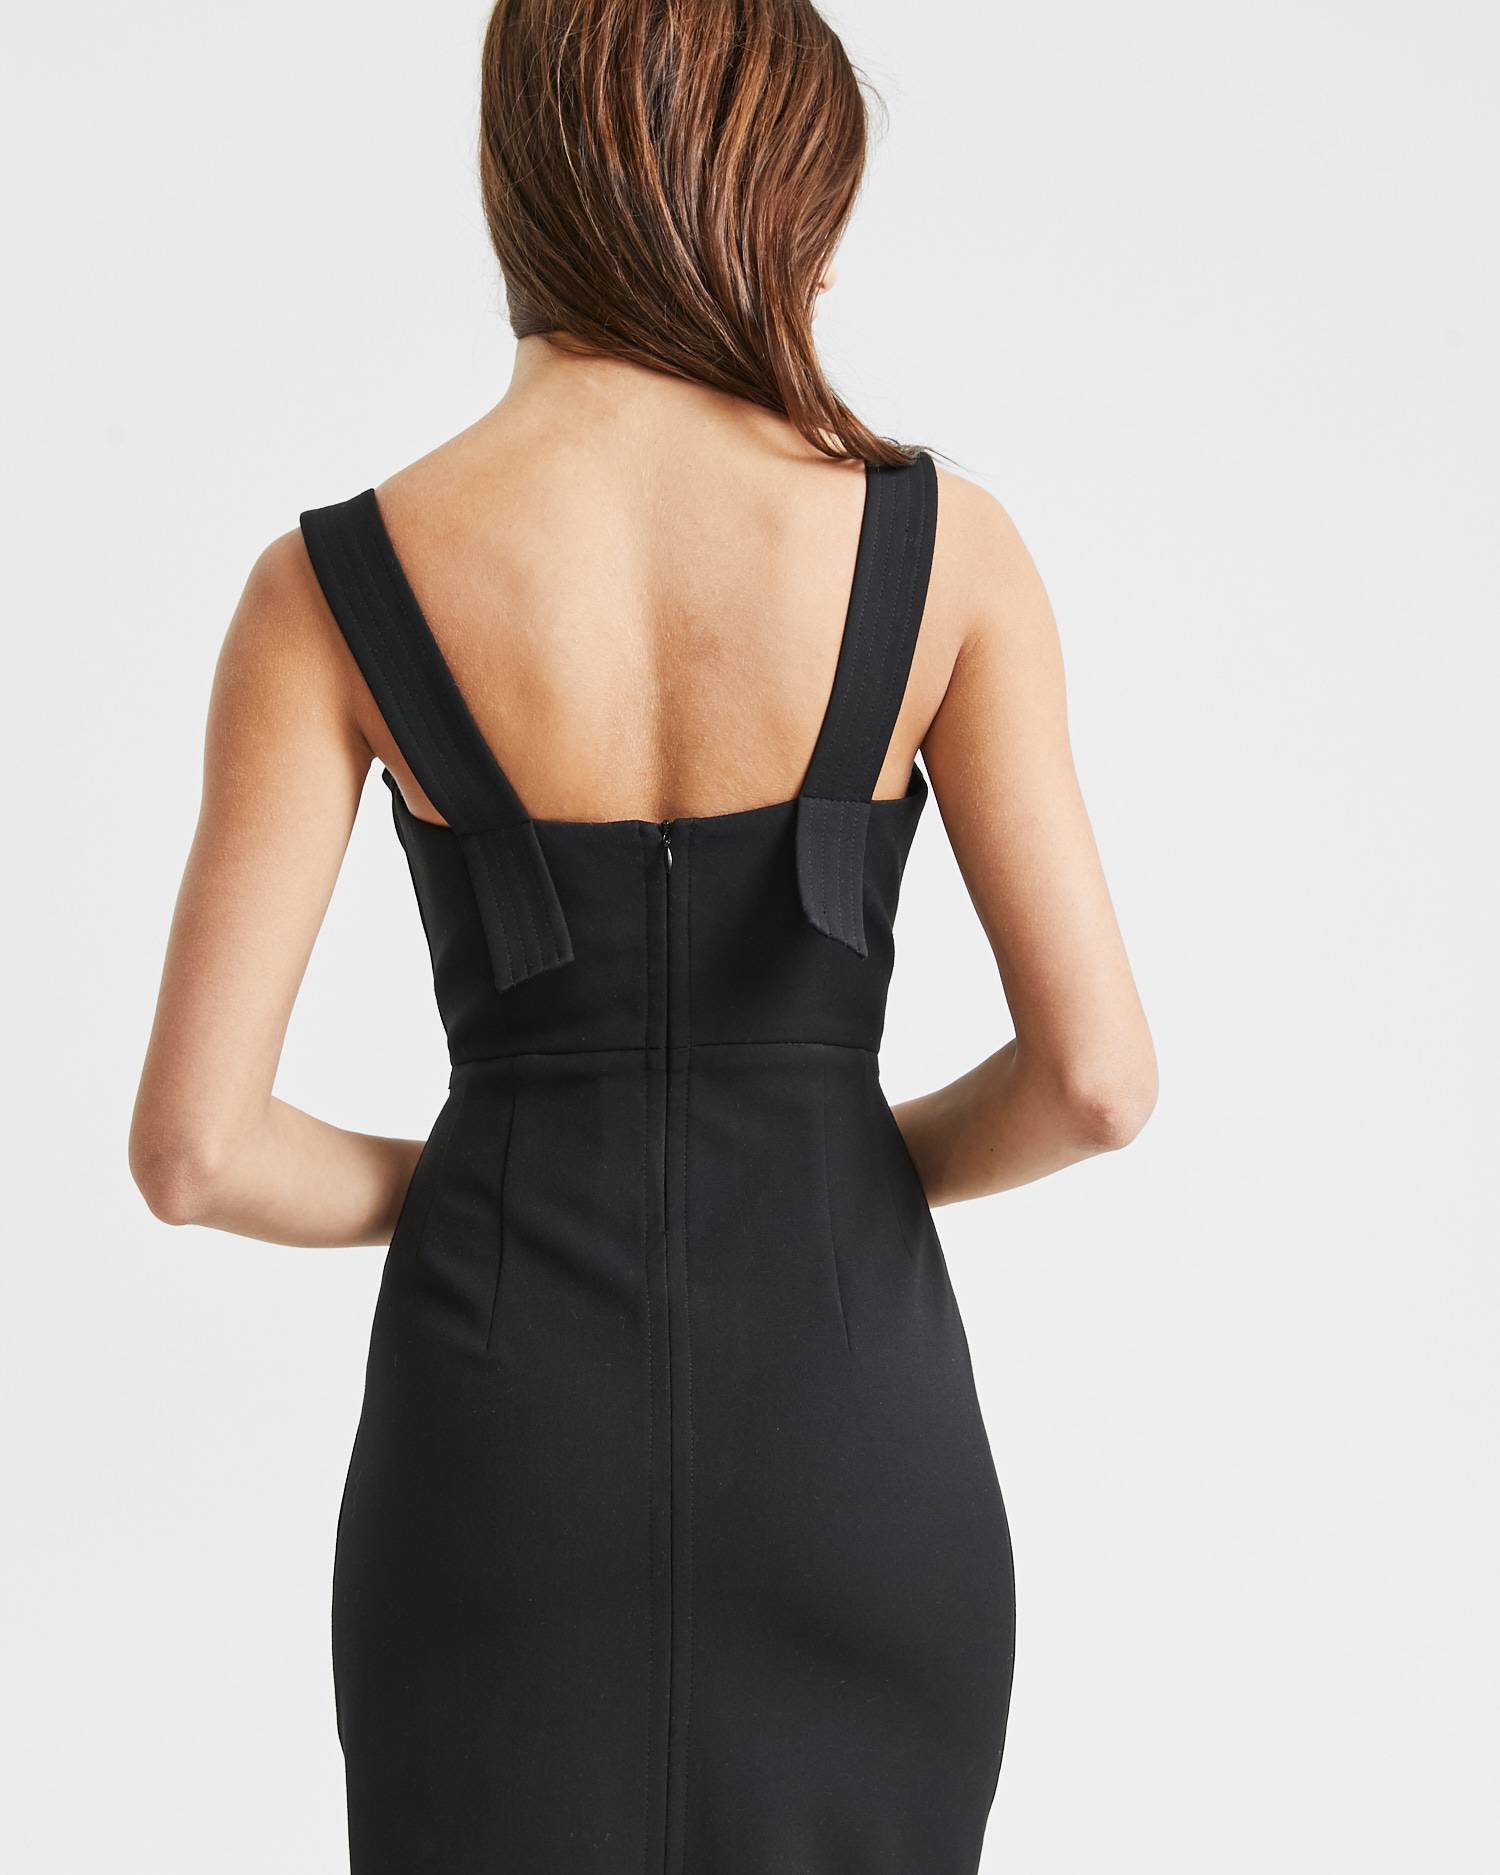 Fitted bustier dress with contrasting stitching